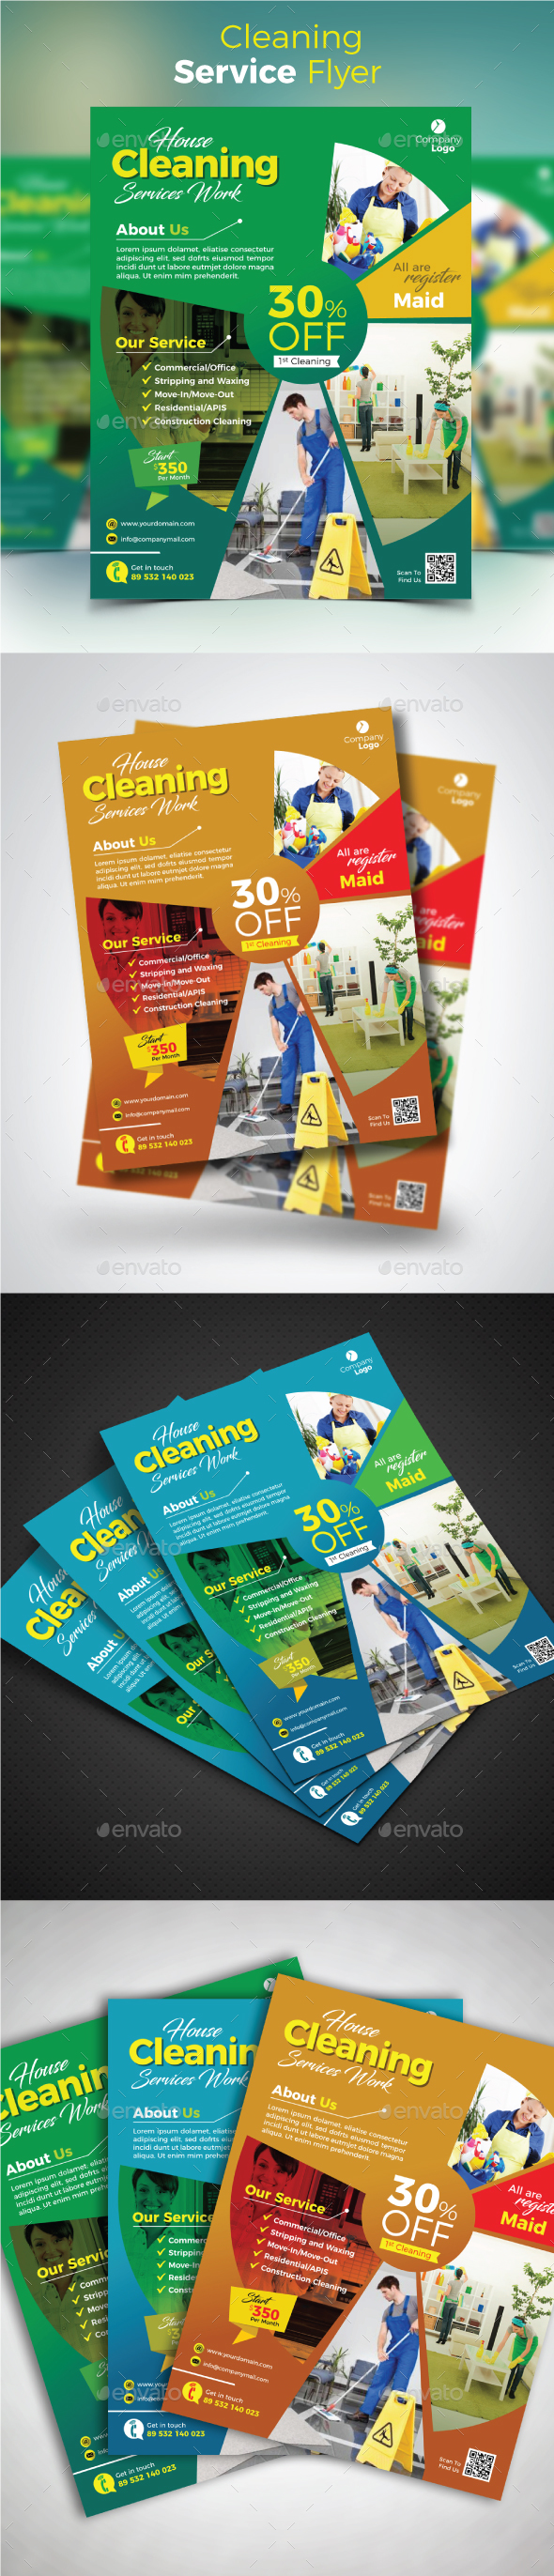 Cleaning Service Flyer - Commerce Flyers